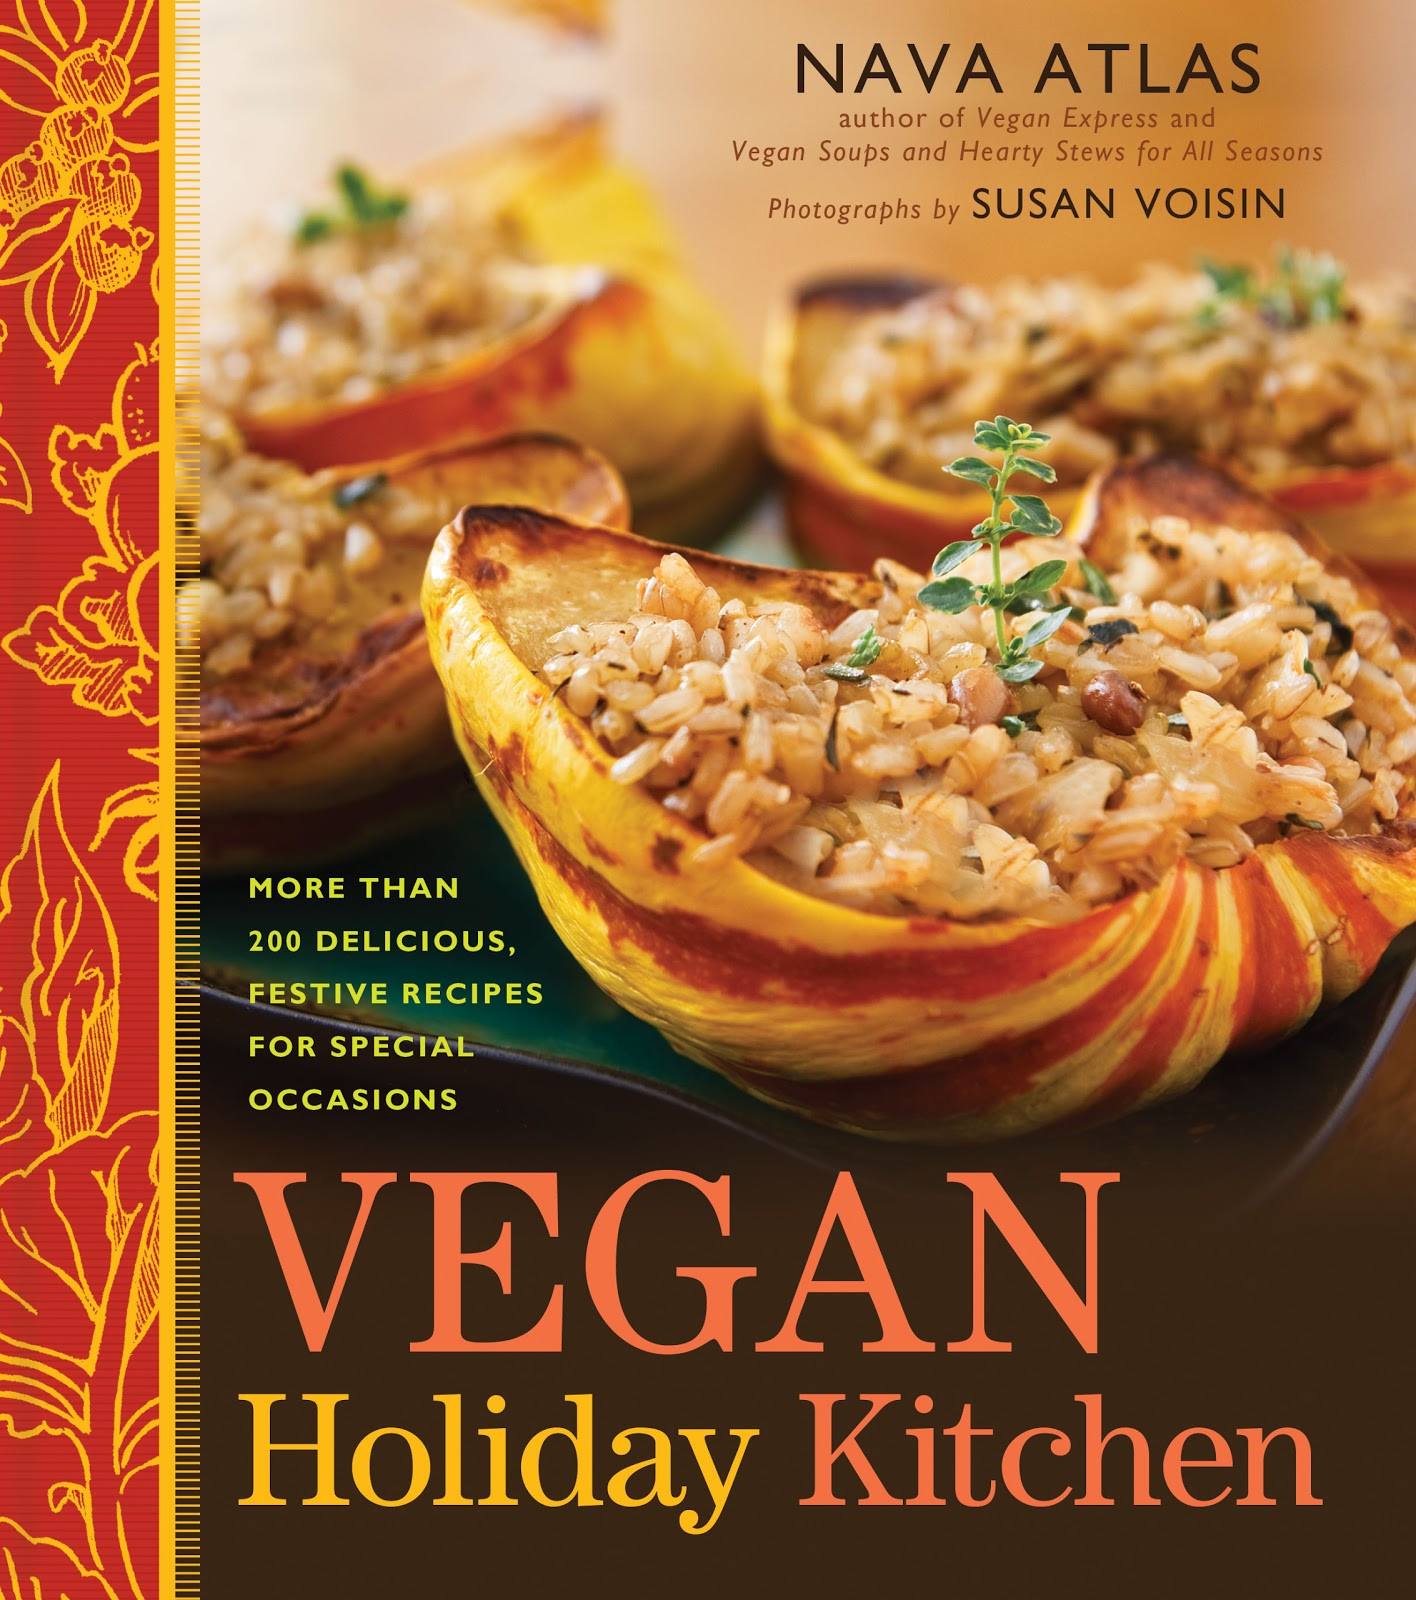 Vegan Recipes For Thanksgiving Dinner  Food Blogga Cookbook Review Vegan Holiday Kitchen by